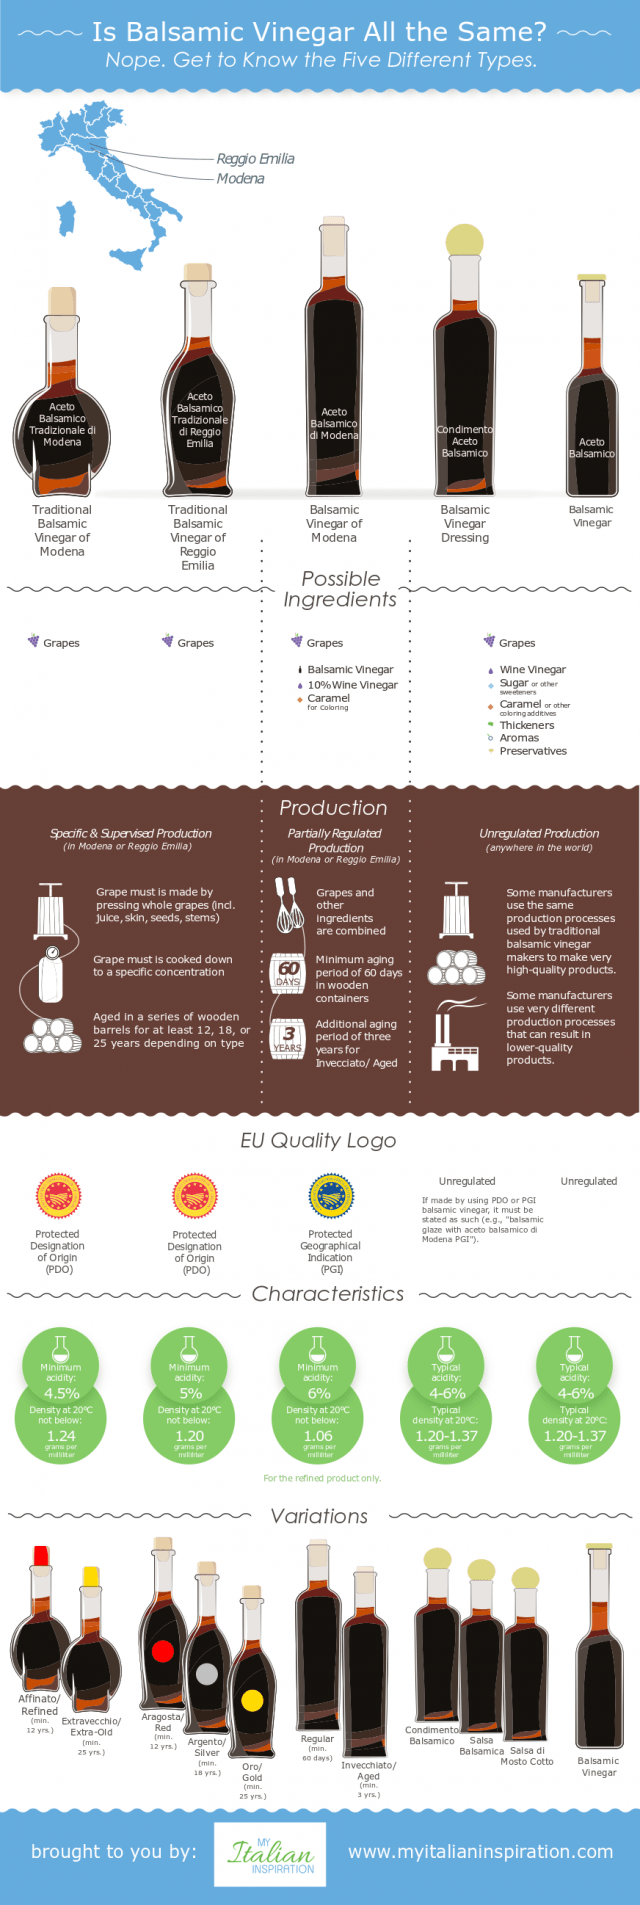 balsamic vinegar infographic